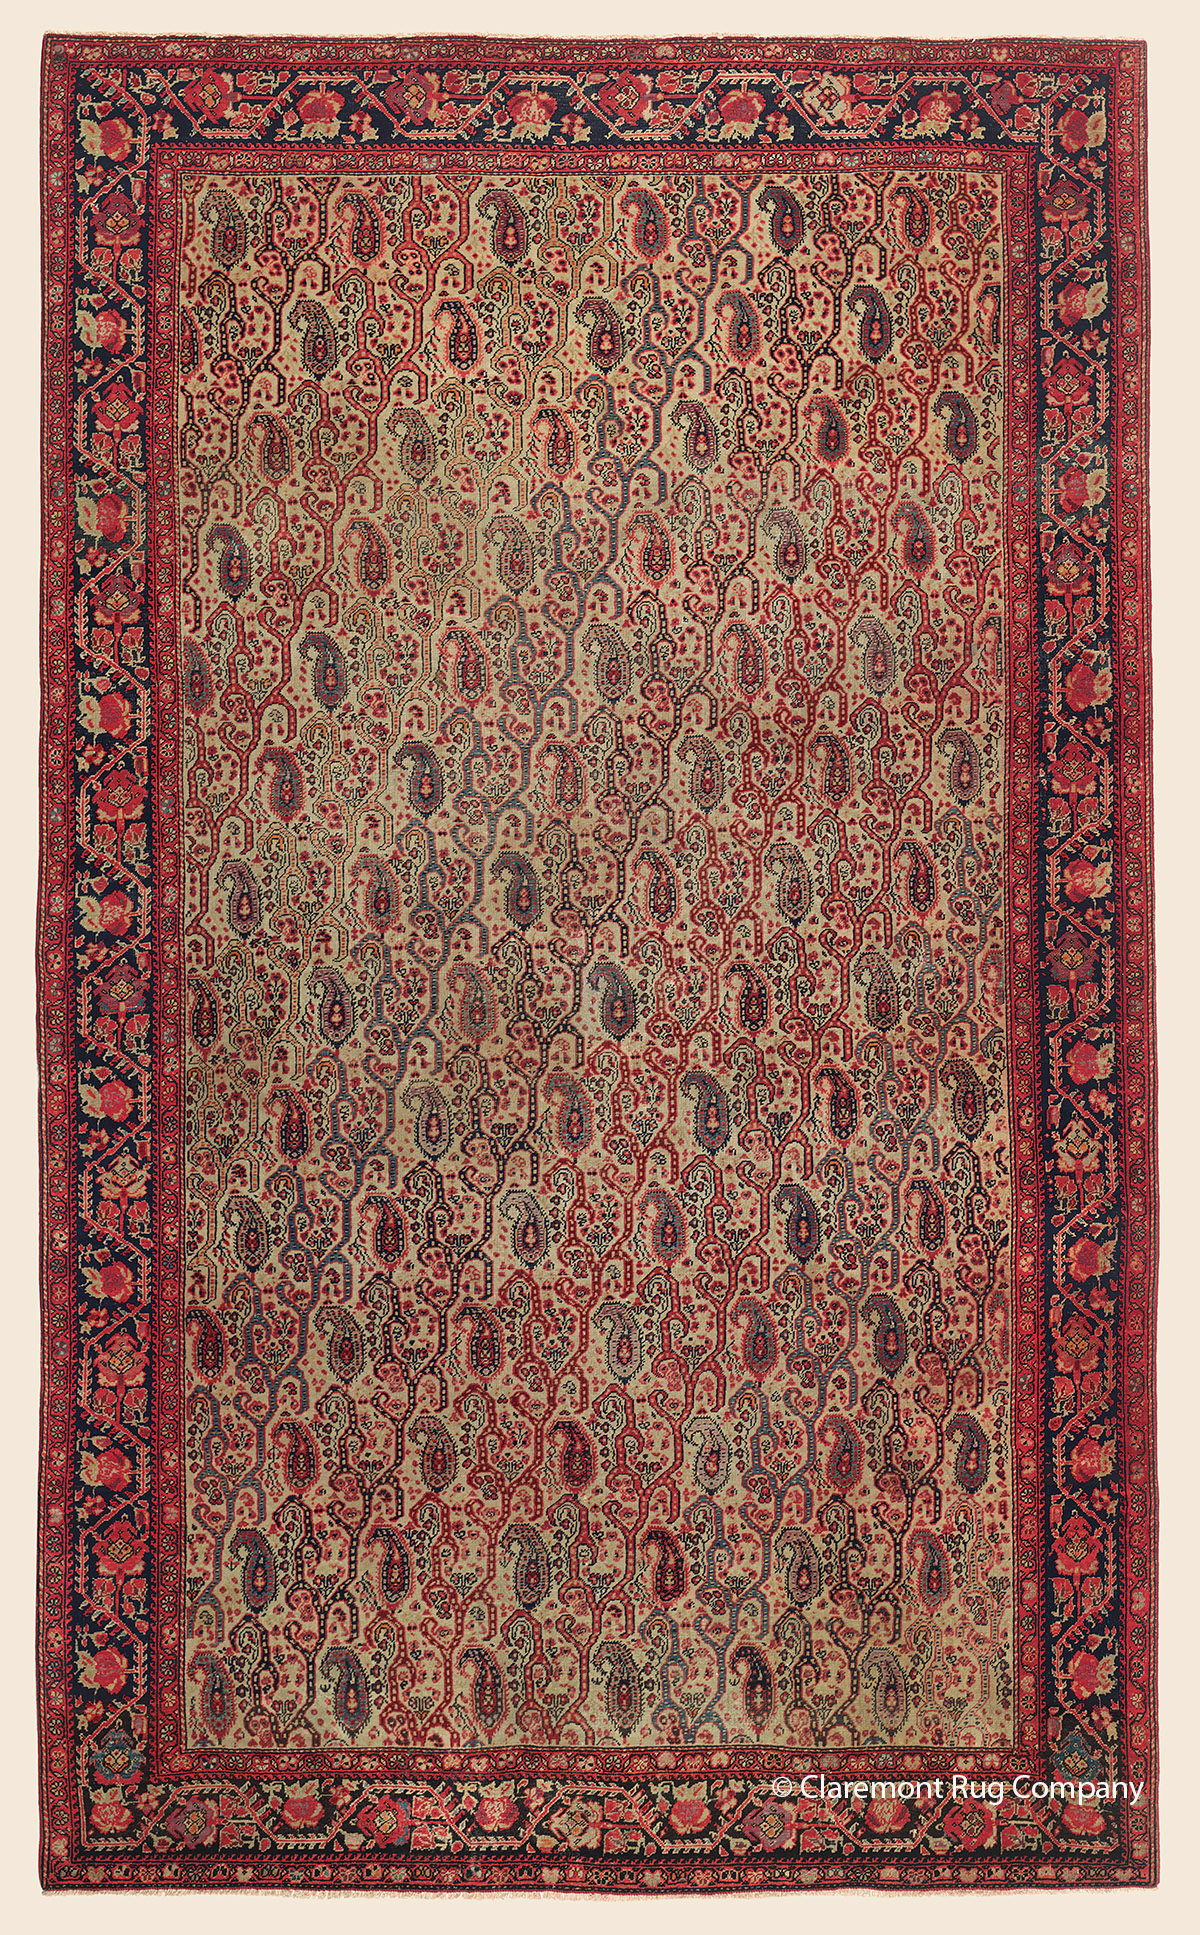 Antique 19th century West Central Persian Ferahan Collectible Oriental Area Rug with allover